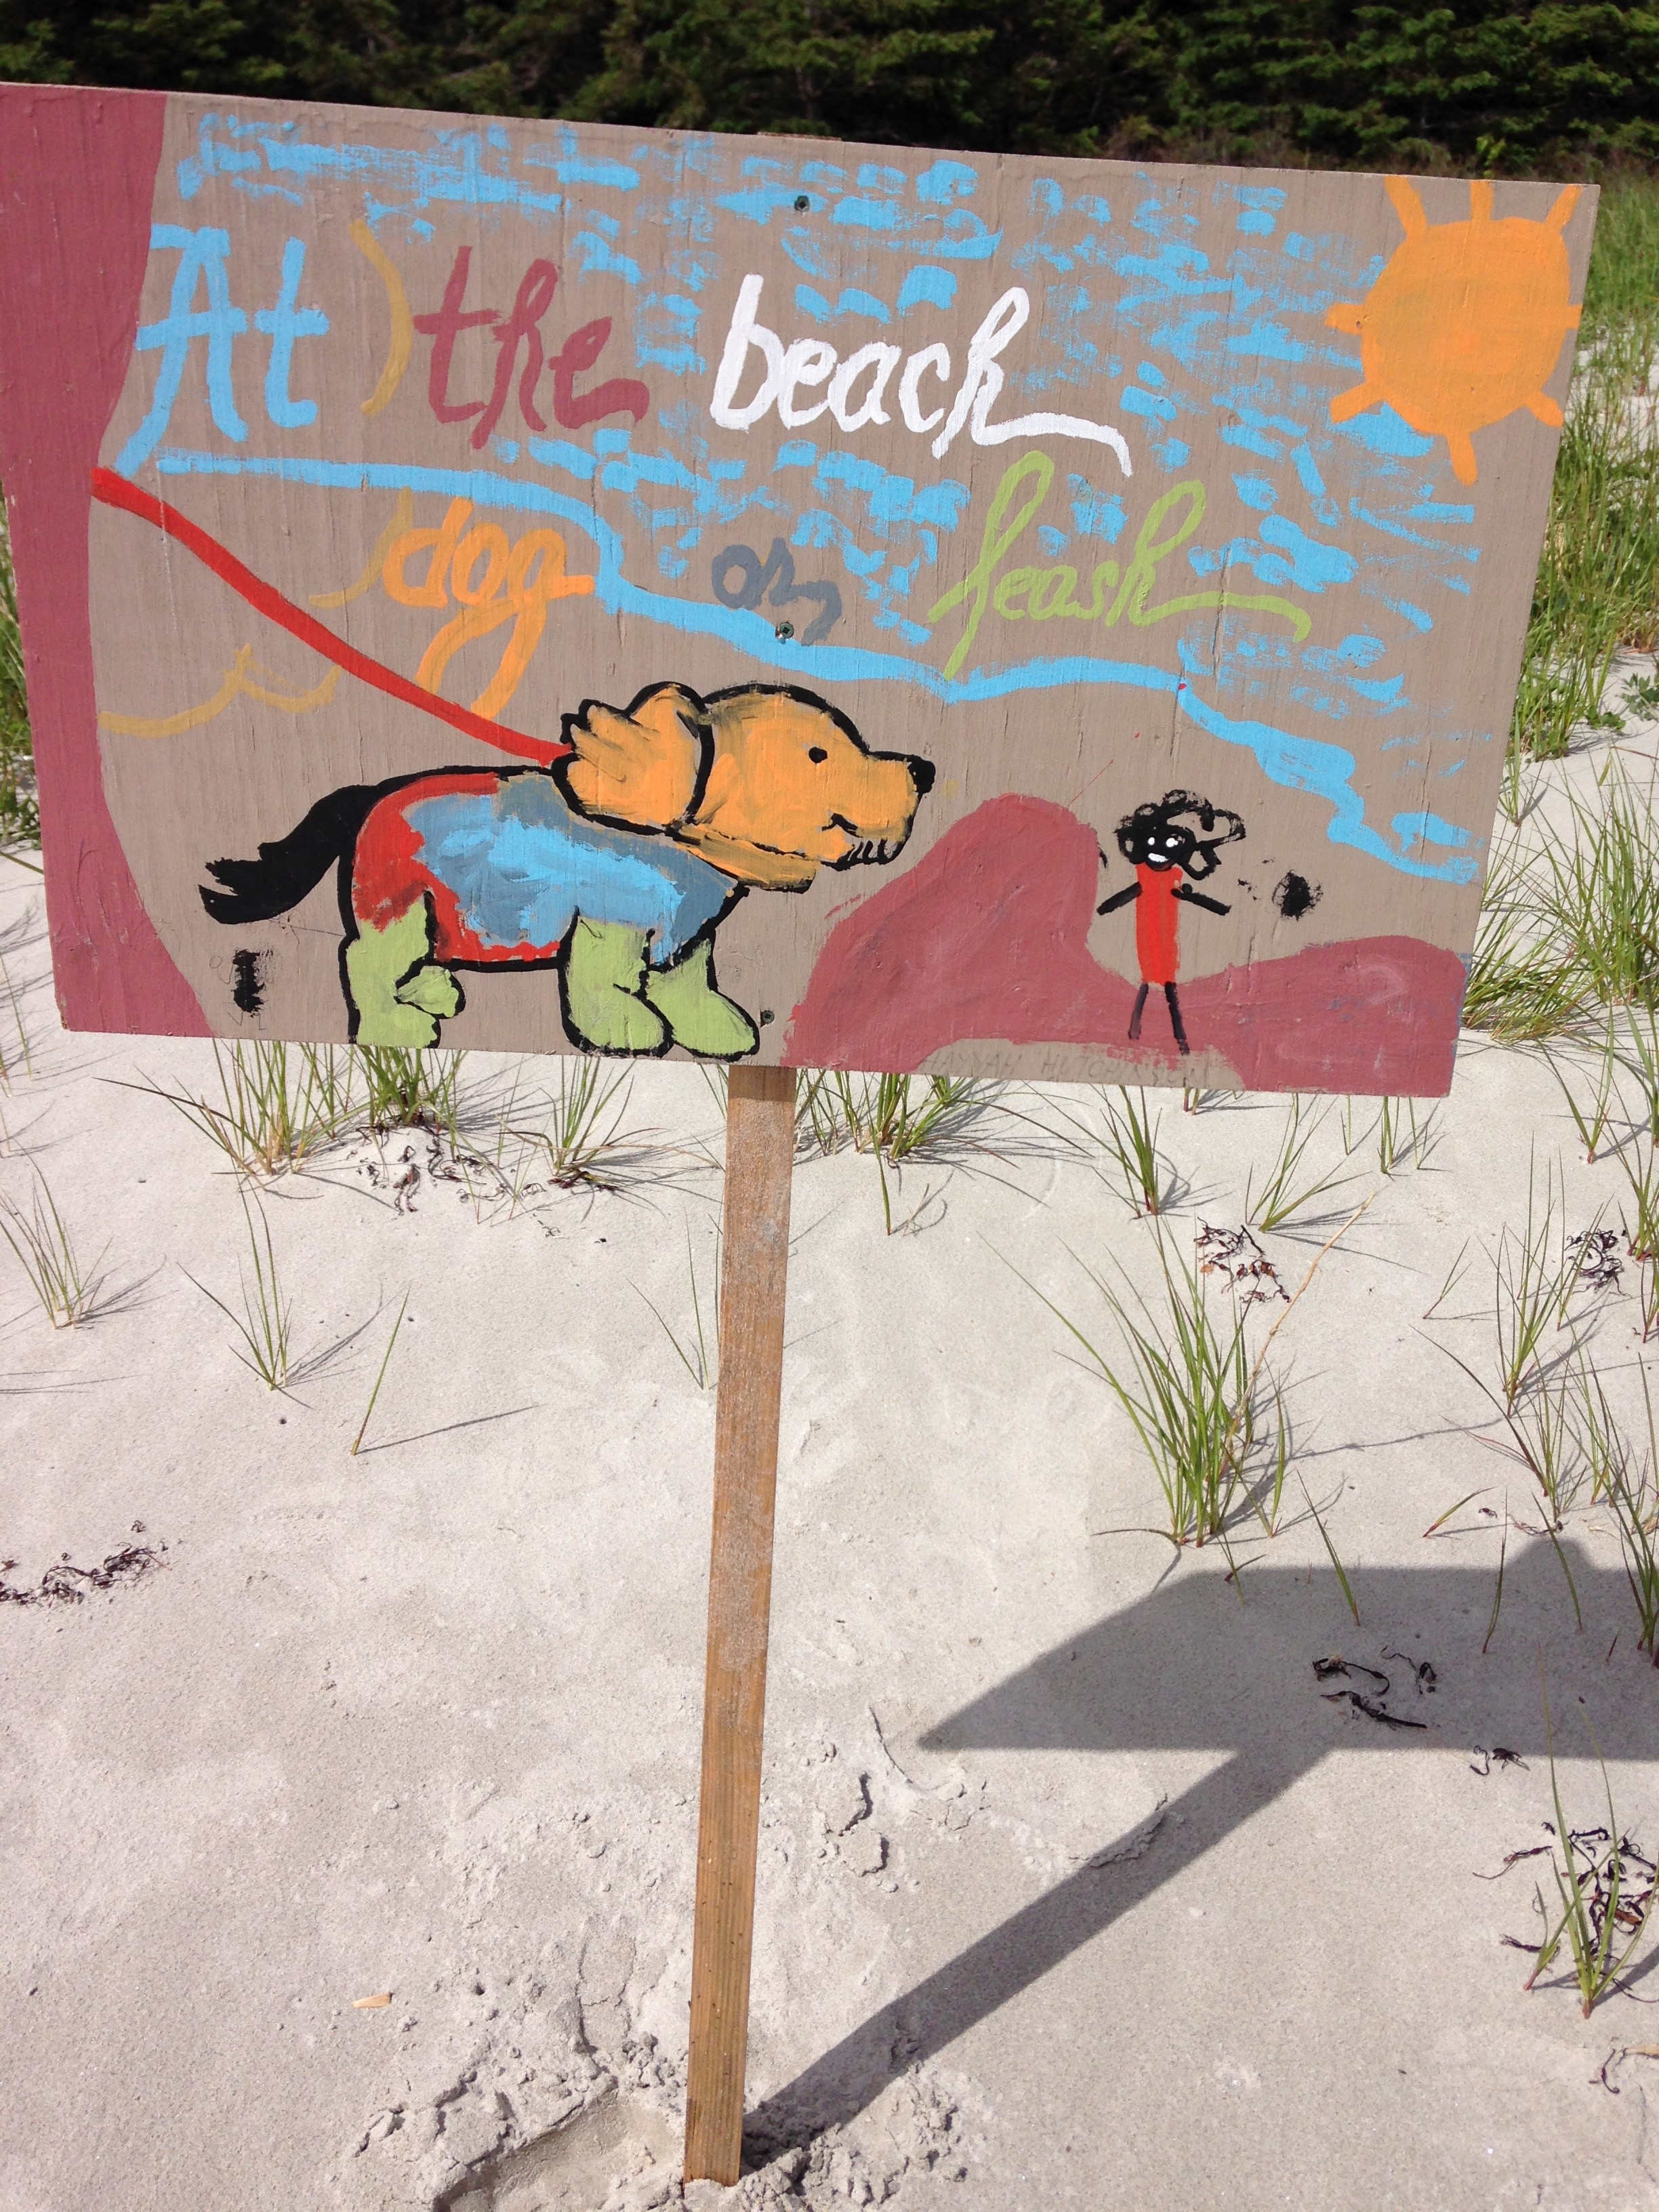 Stewardship initiatives at Carters Beach